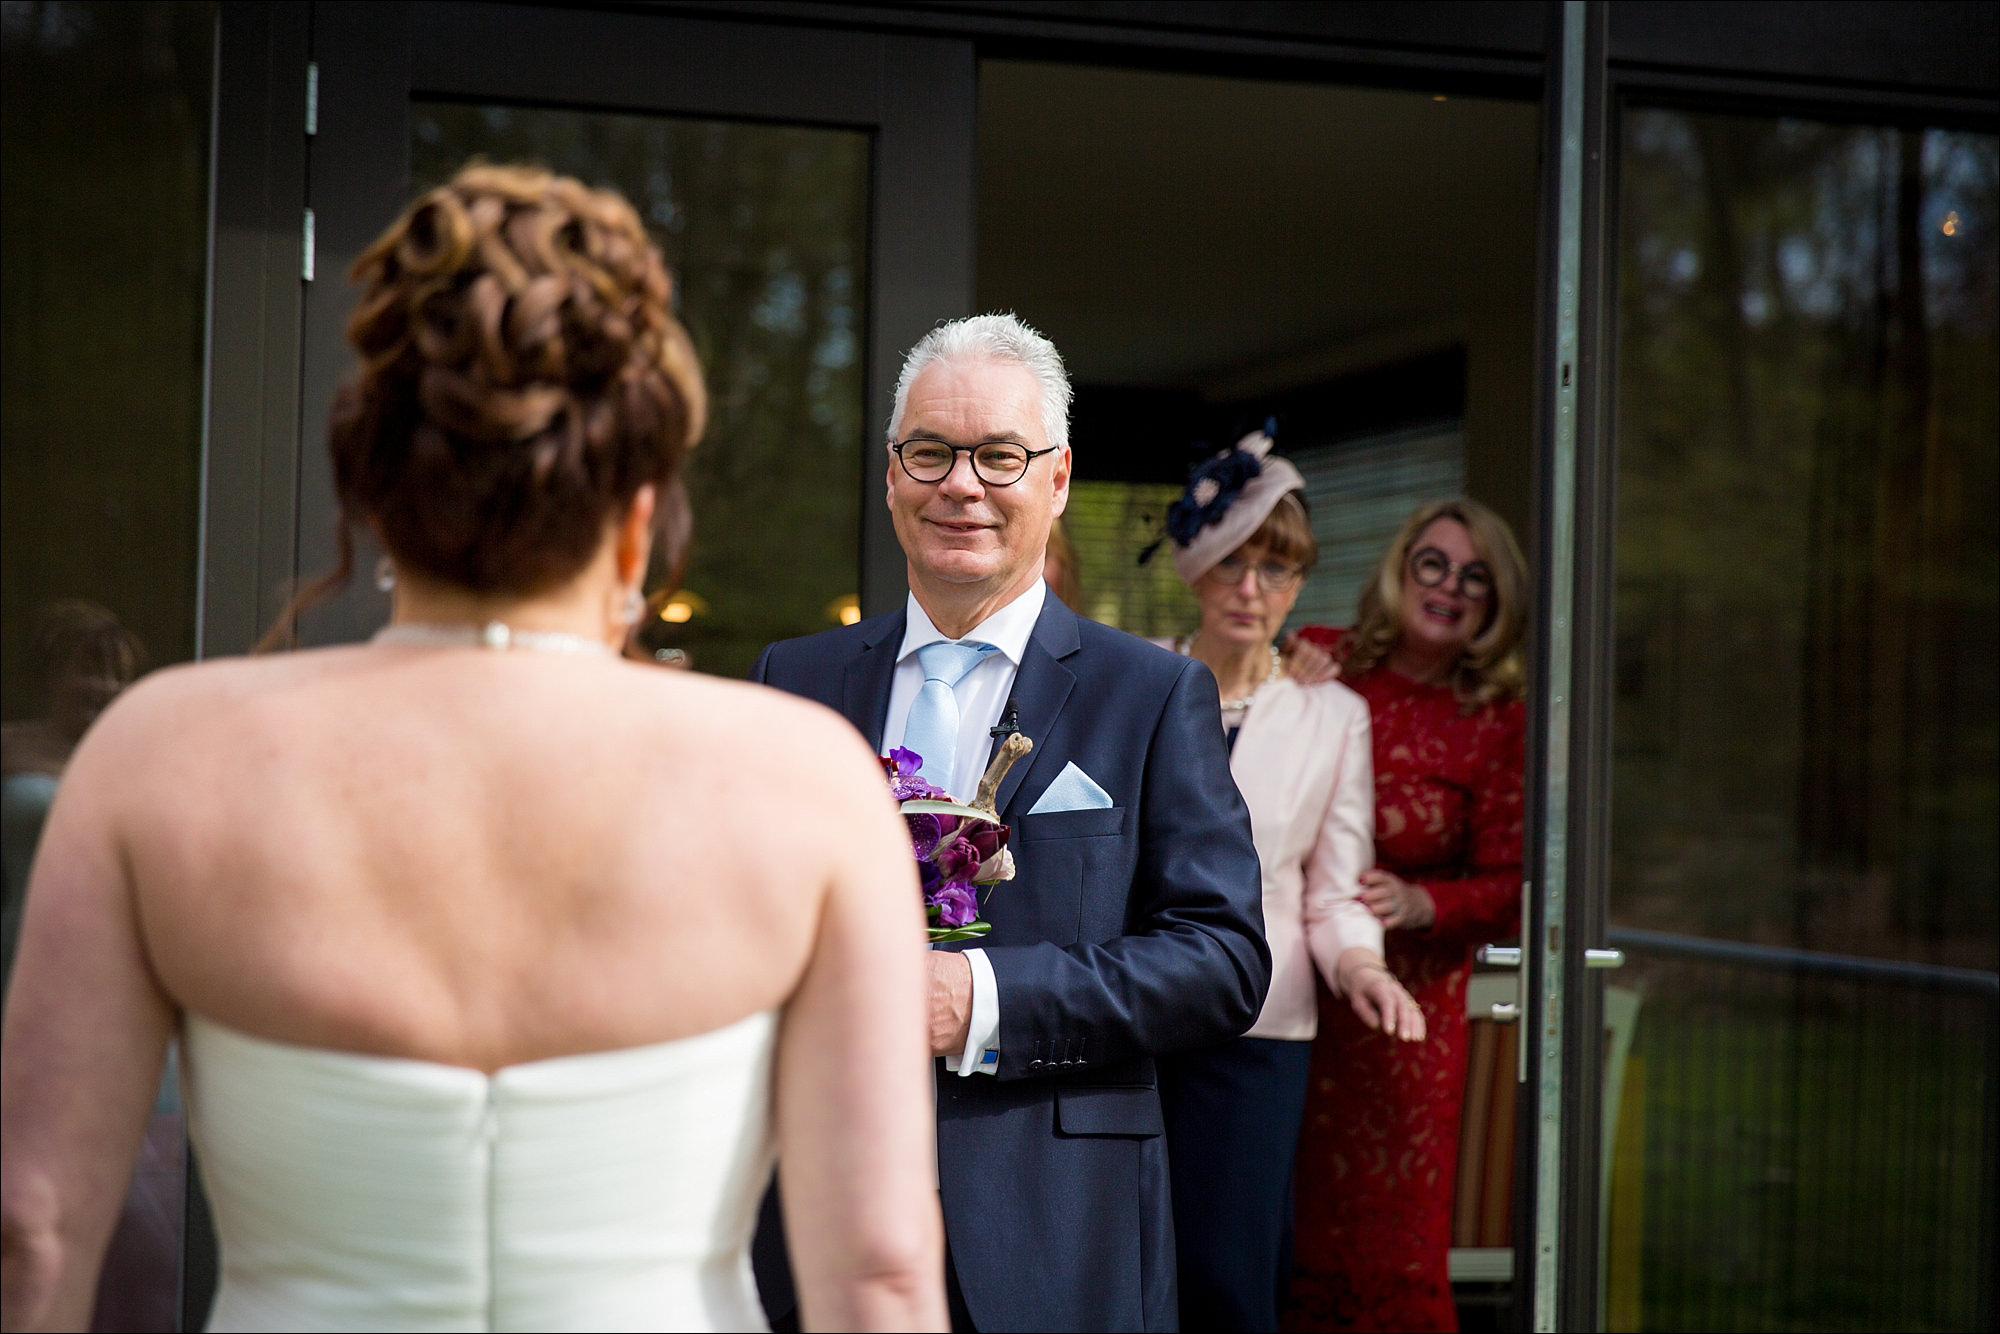 wedding photographer dublin david duignan photography real weddings Ireland 15